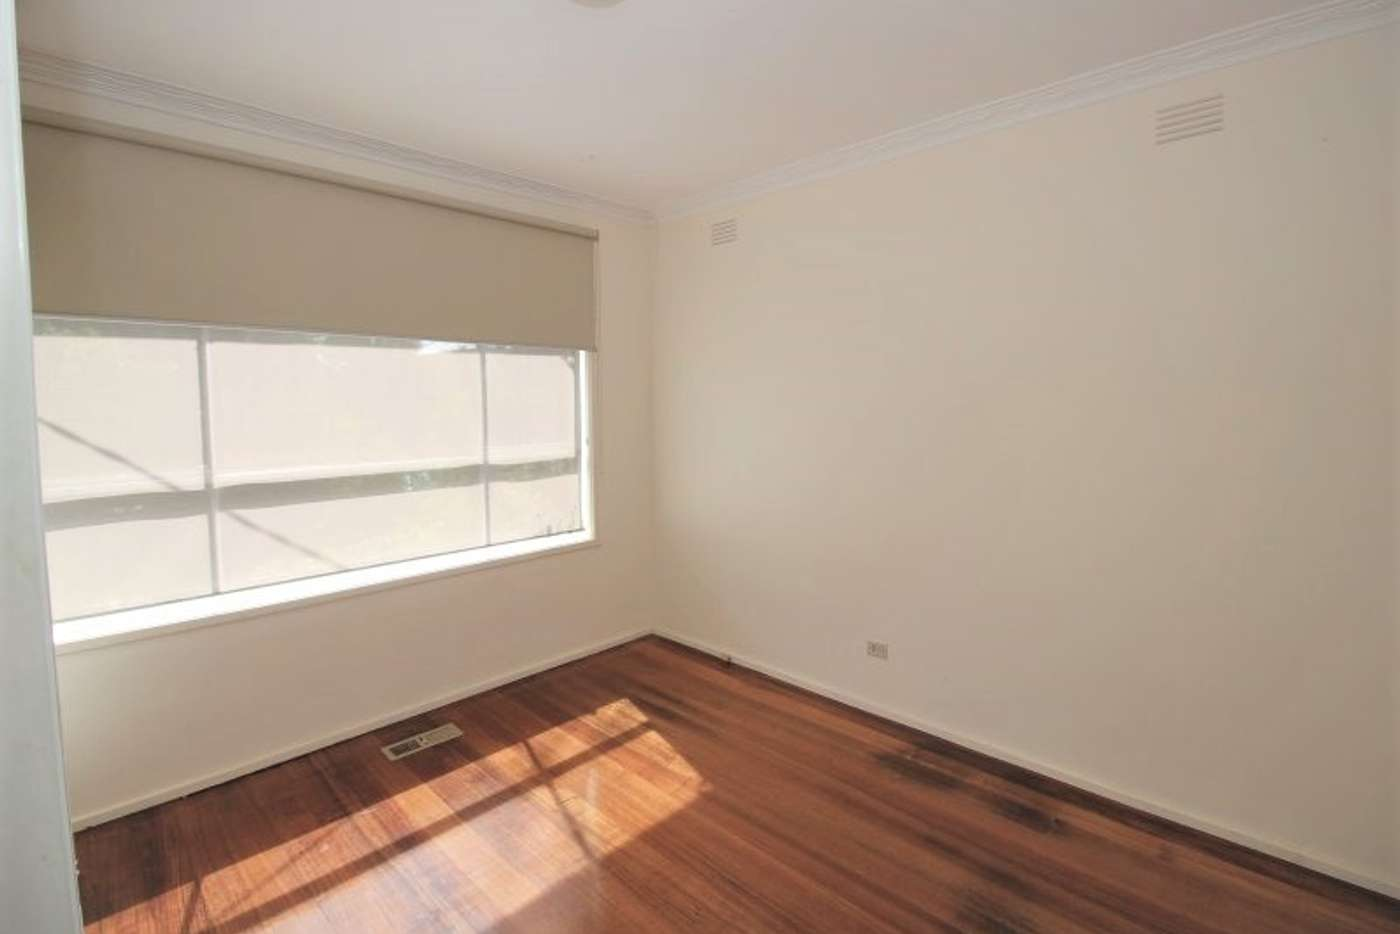 Seventh view of Homely house listing, 38 Mandowie Rd, Glen Waverley VIC 3150